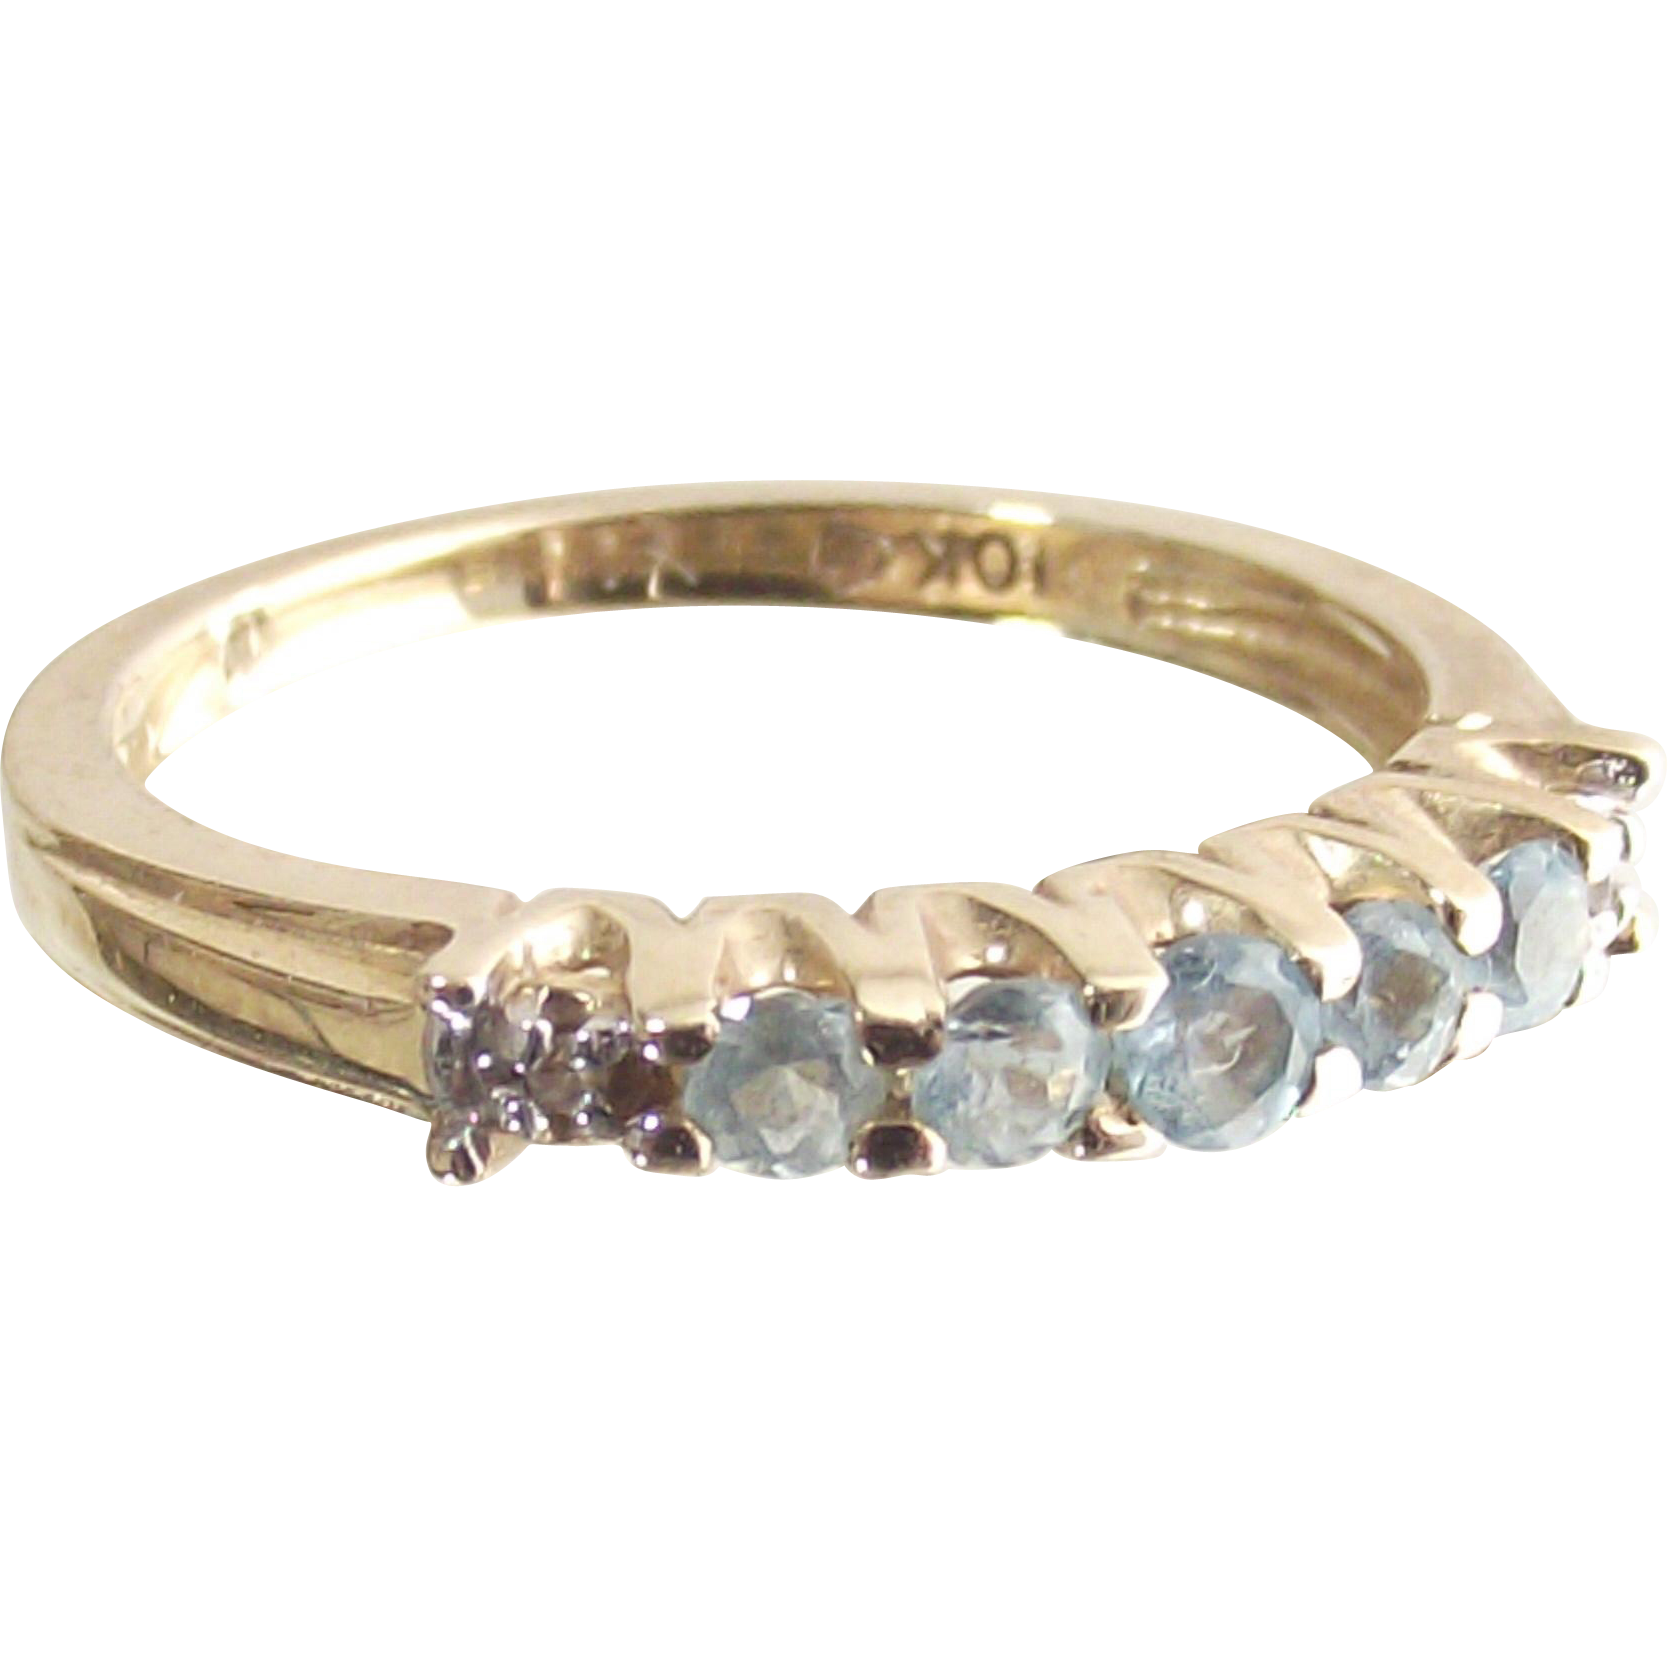 Ten Karet Yellow Gold Ring Guard Band Ring with Sky Blue Topaz and